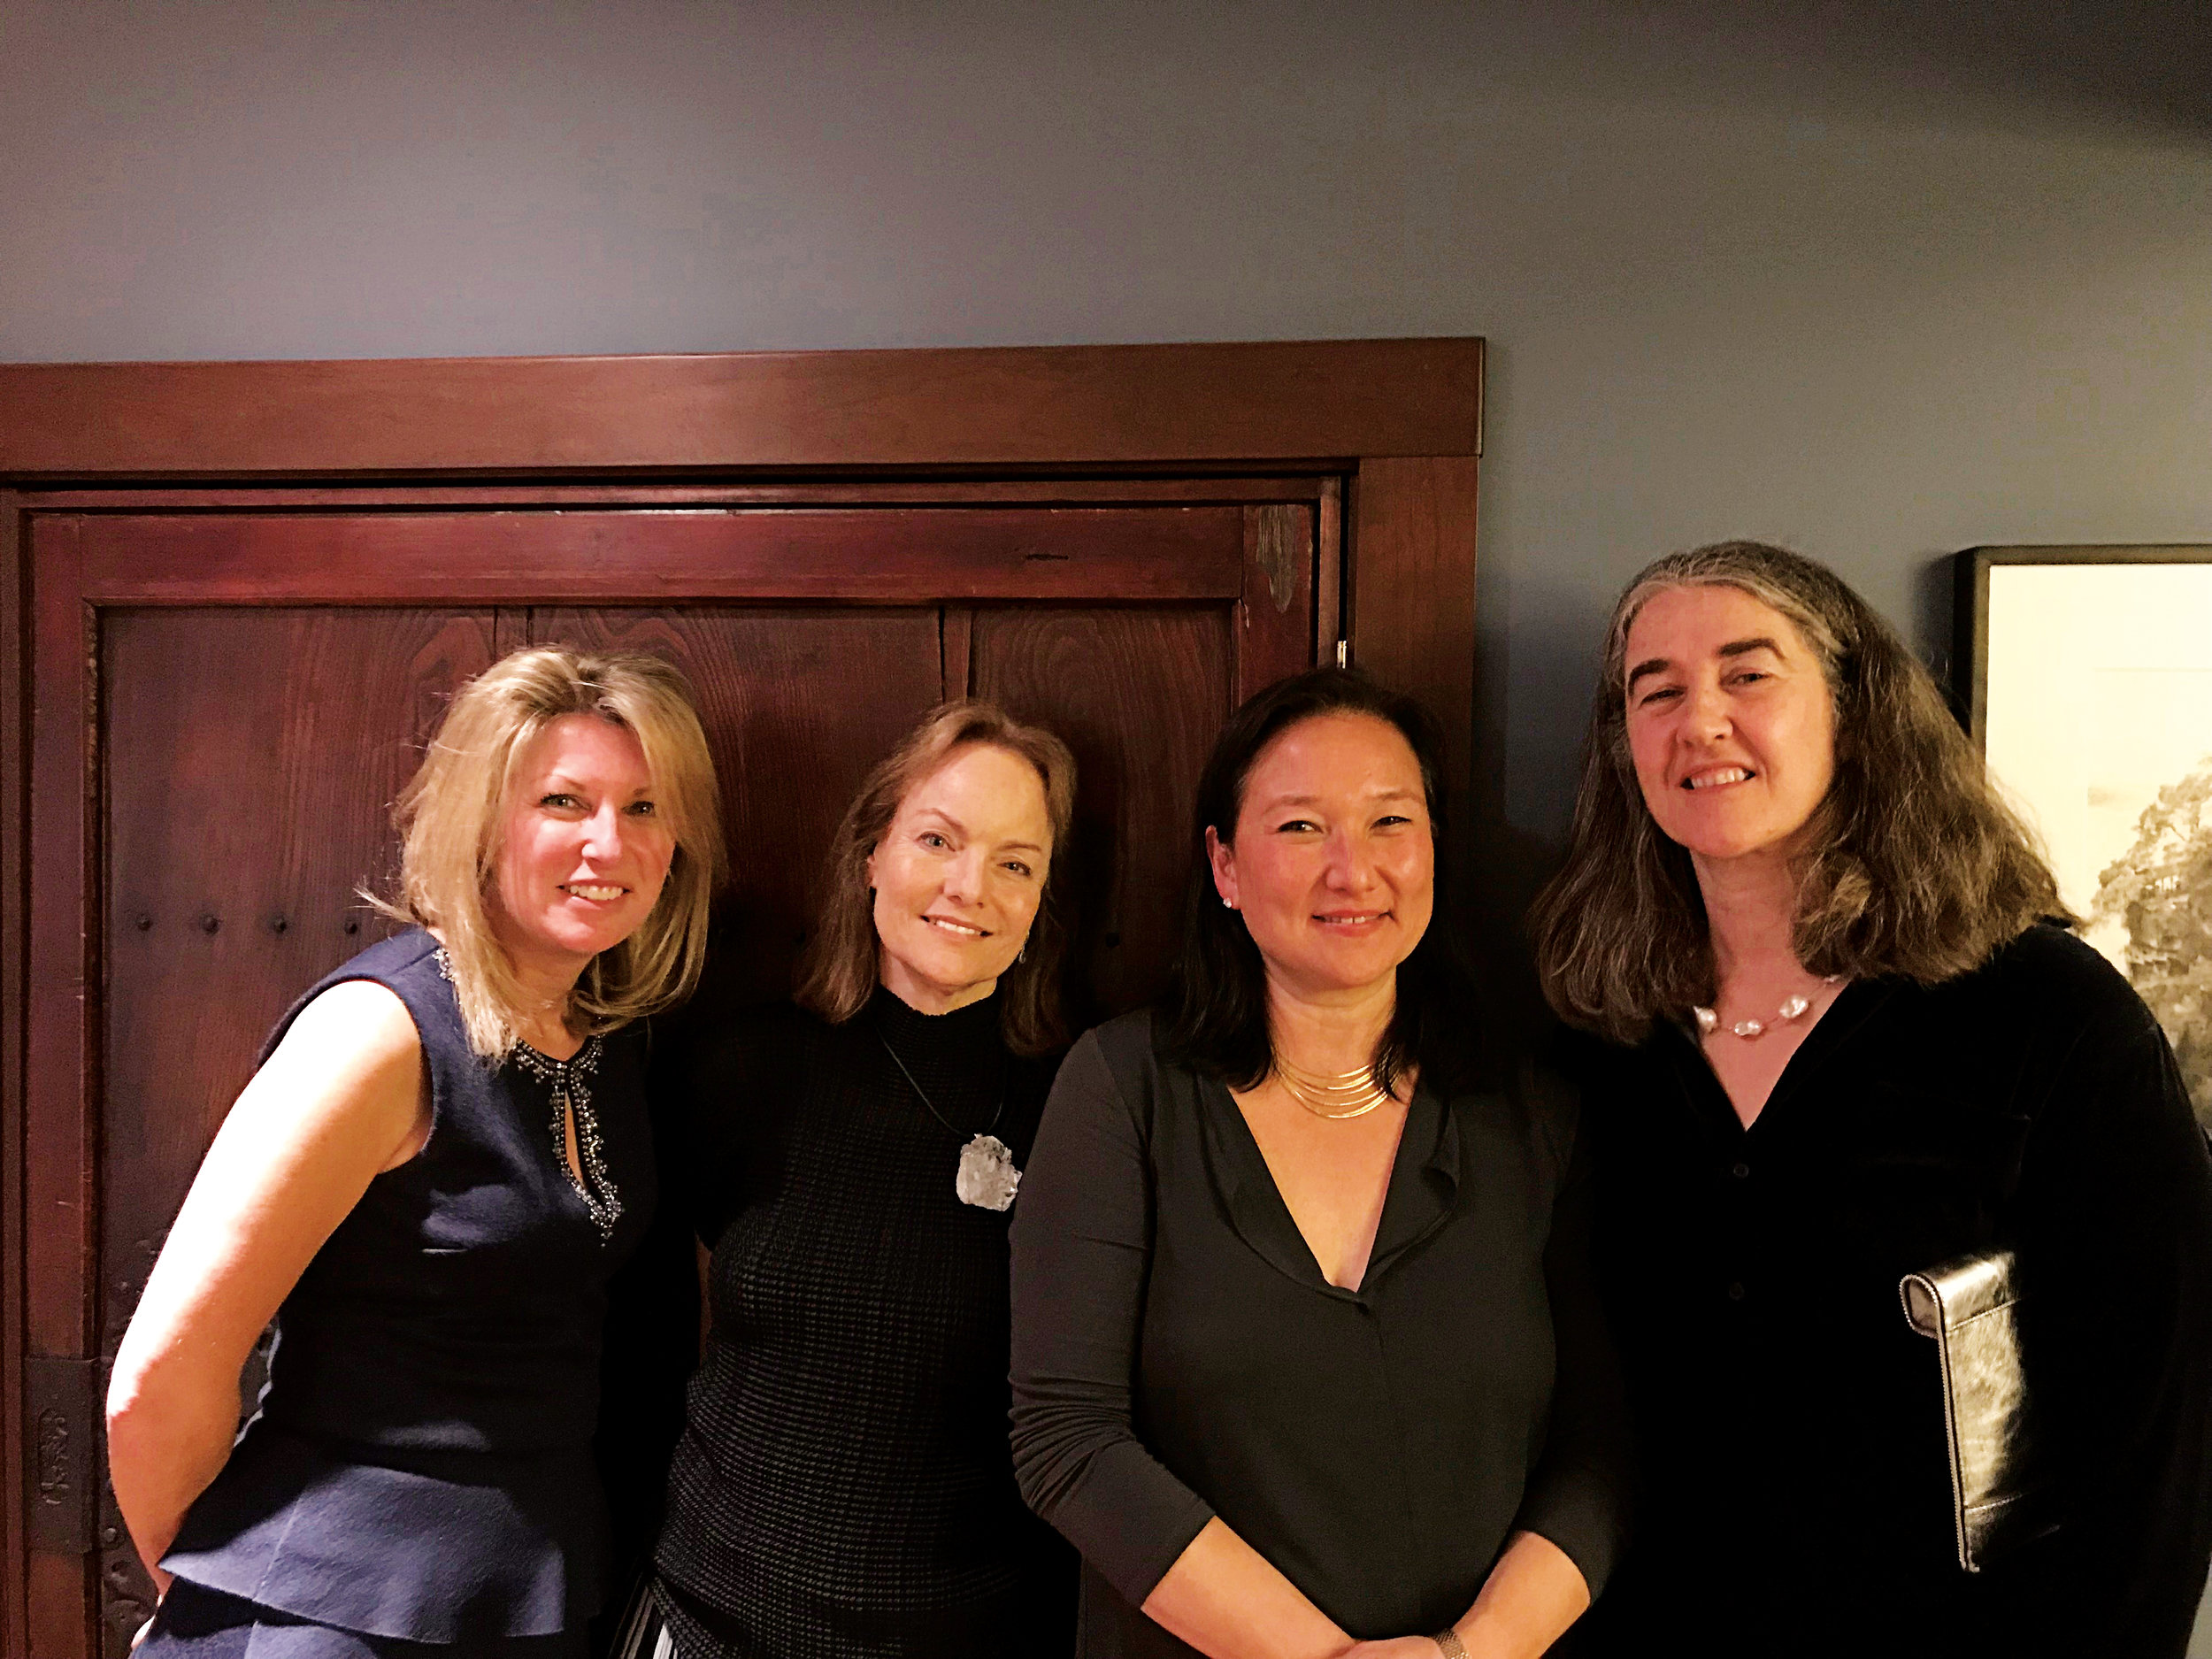 Alison Zetterquist '76 gets by with a little help from her friends during her milestone birthday celebration. (L. to r.) Claire Callewaert, Alison, Liz Robbins '79, and Anne Benning '79.